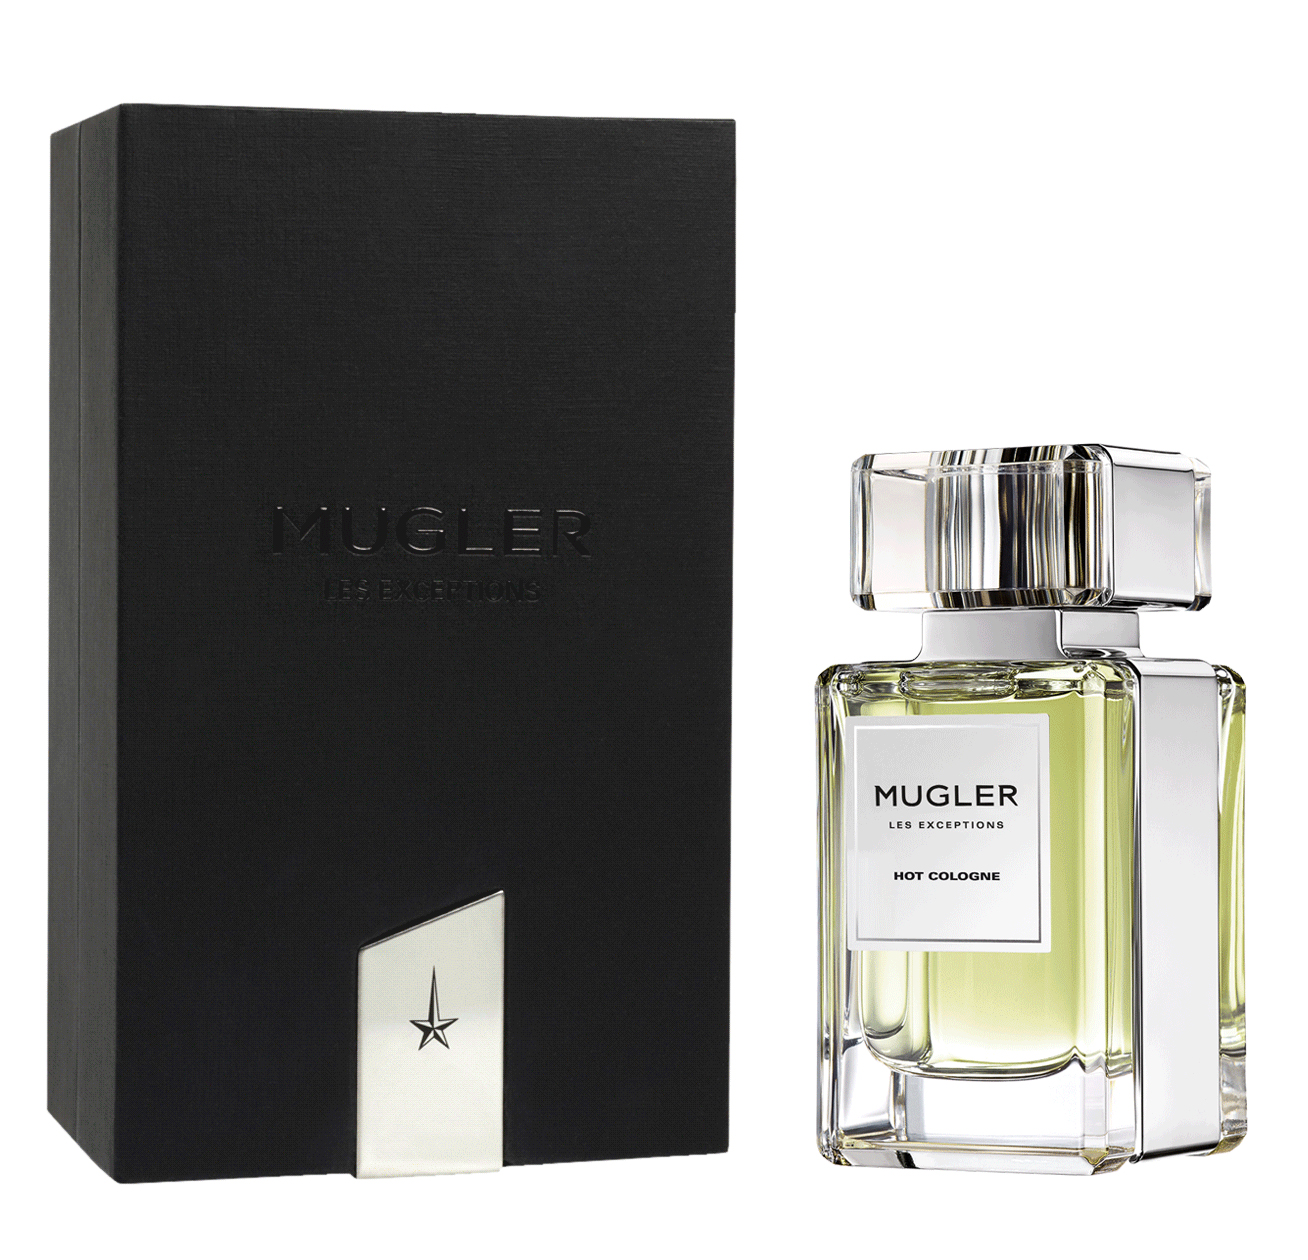 Hot Cologne Mugler perfume - a new fragrance for women and ...